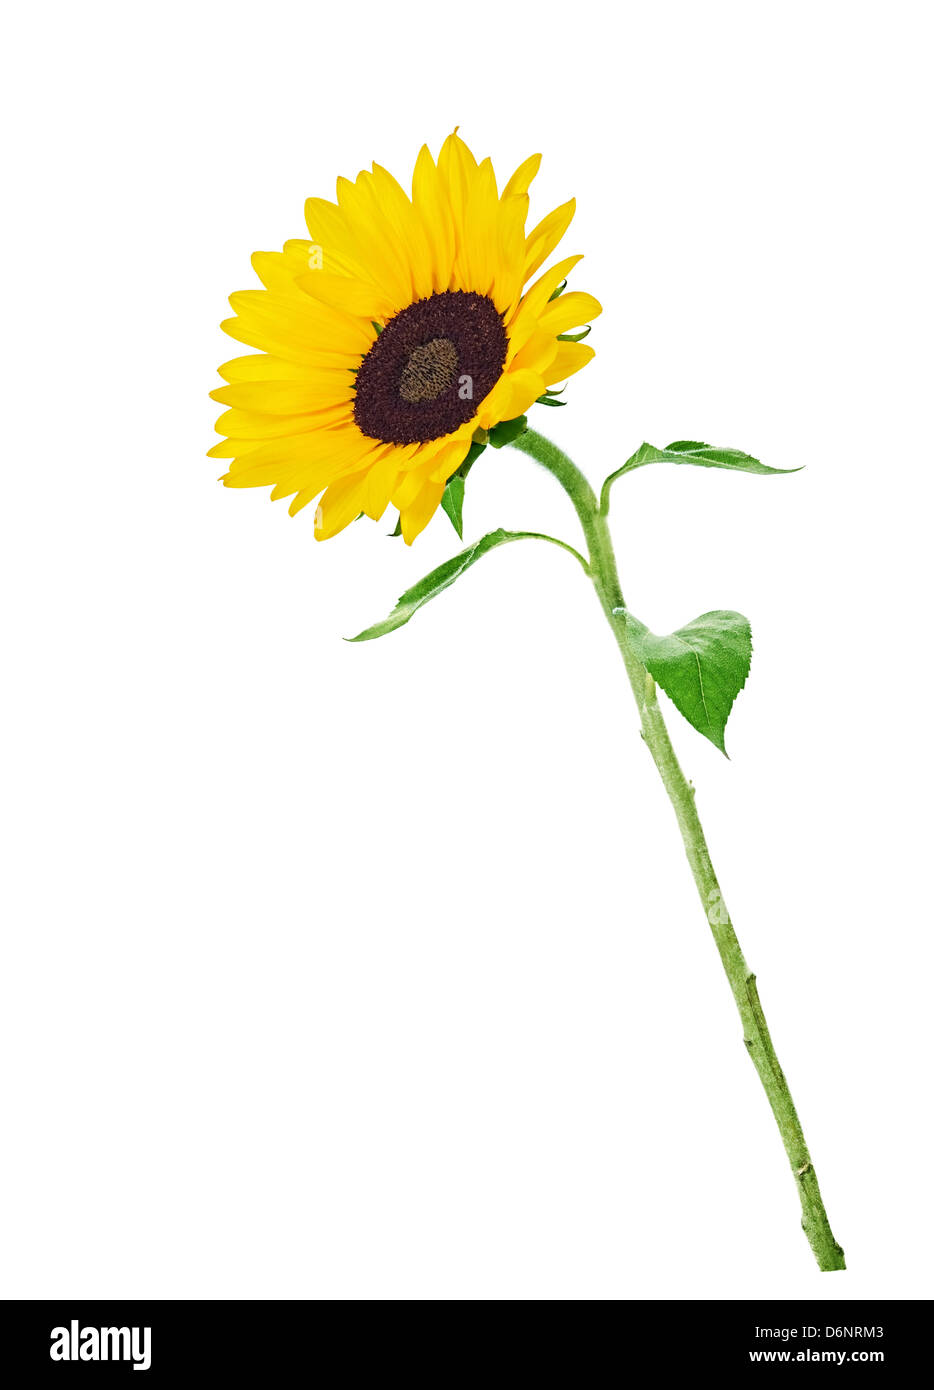 colorful yellow sunflower isolated on white background - Stock Image